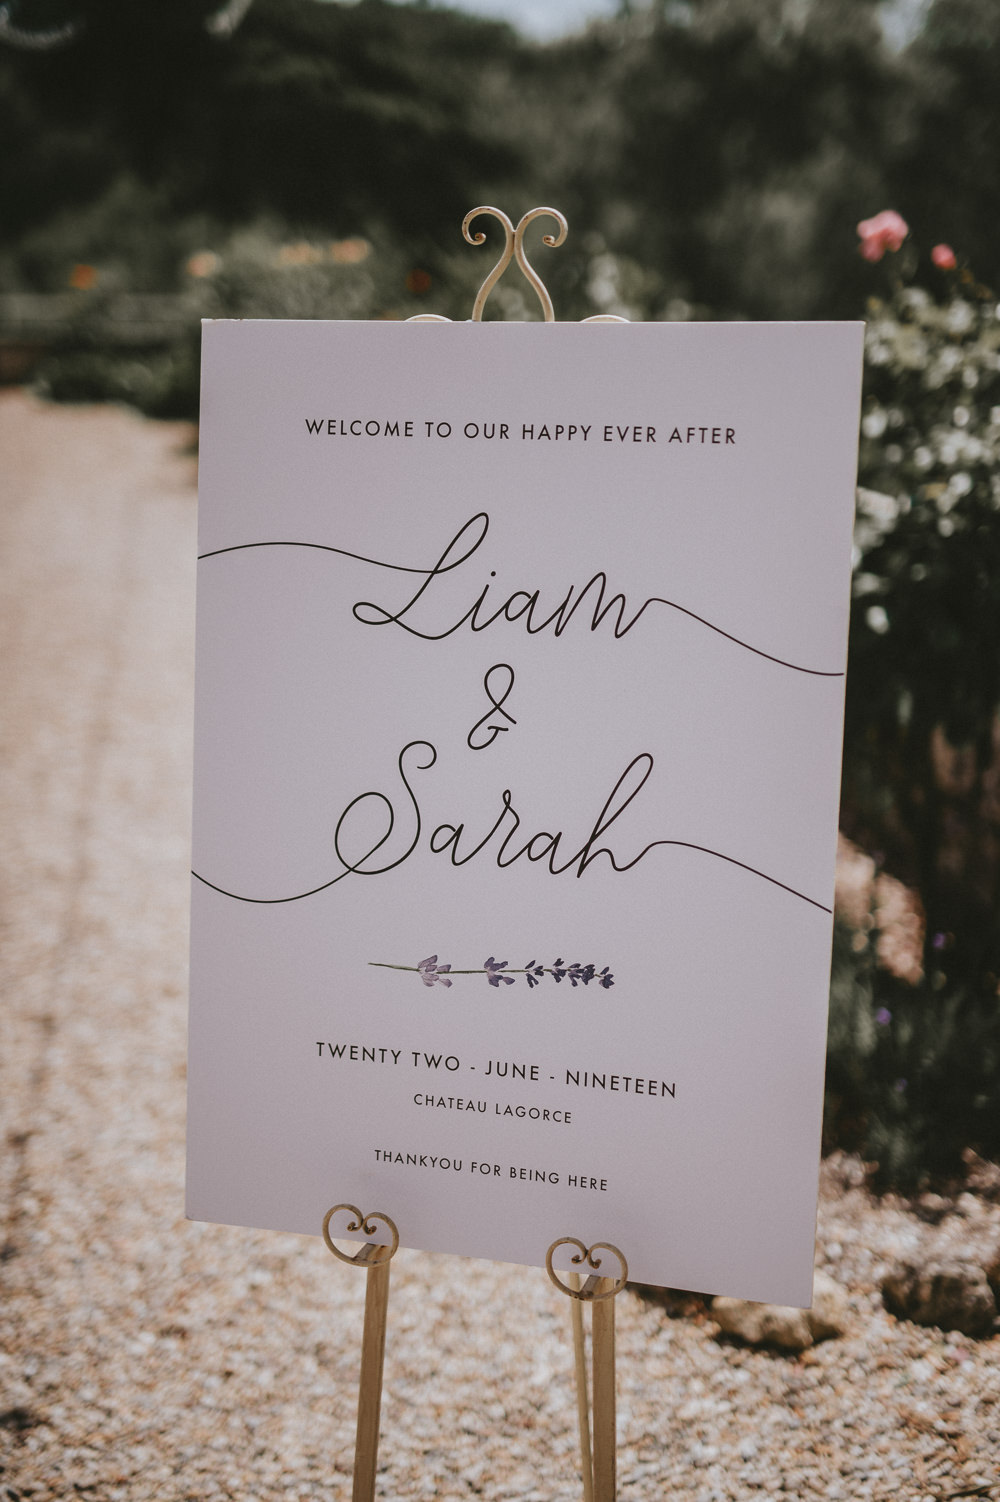 Welcome Sign Signs Signage Calligraphy Chateau Lagorce Wedding Flawless Photography